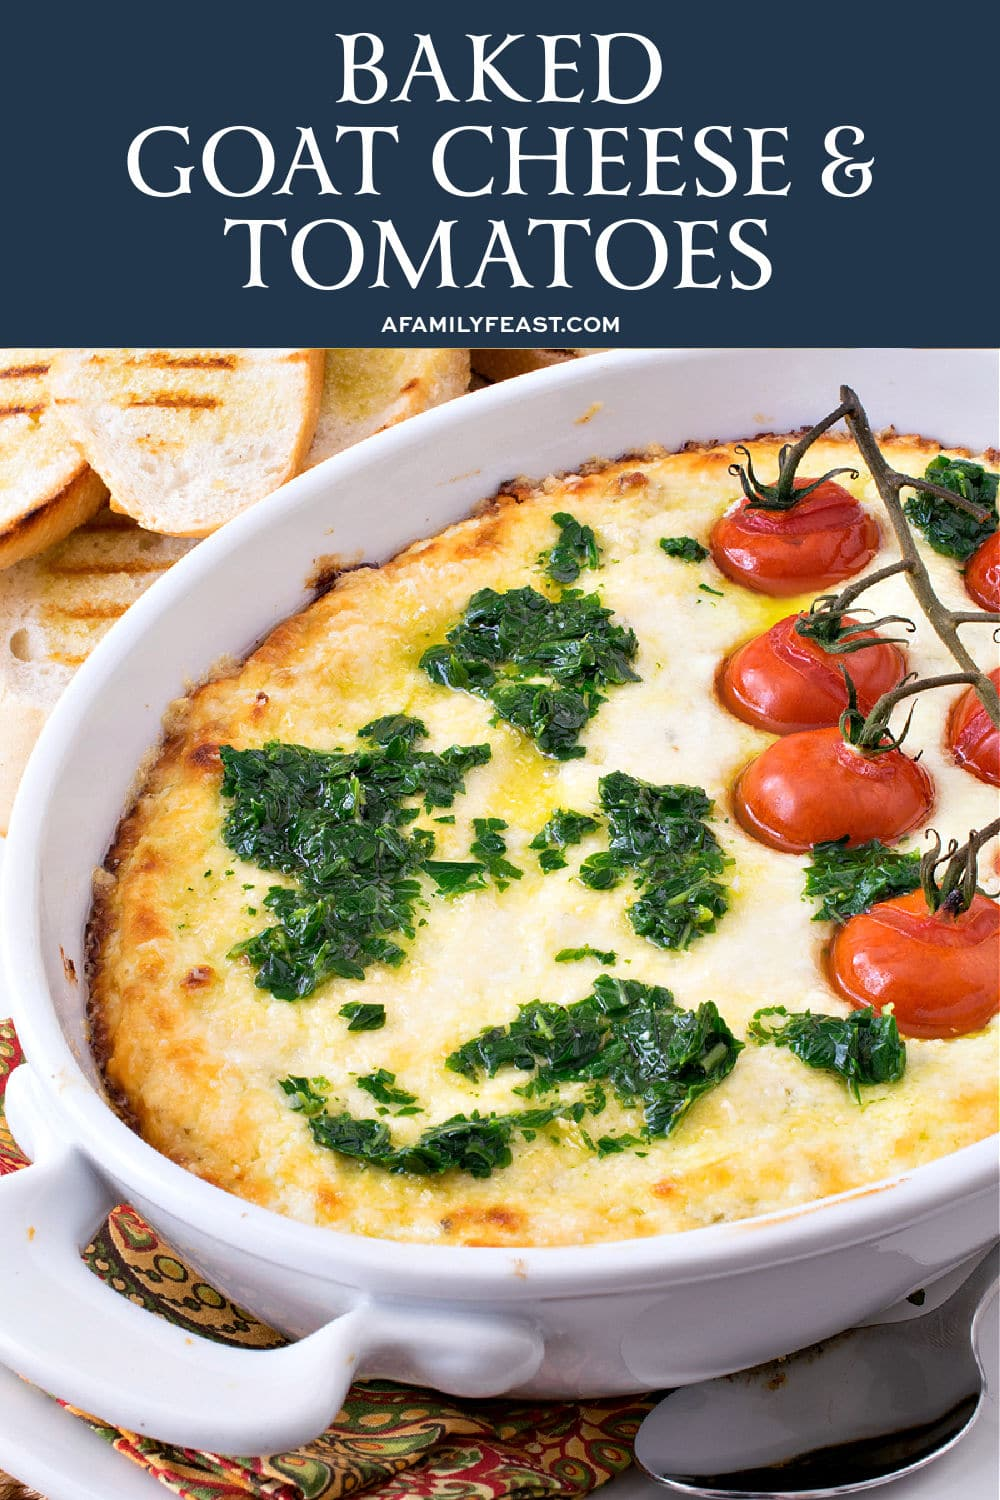 Baked Goat Cheese & Tomatoes